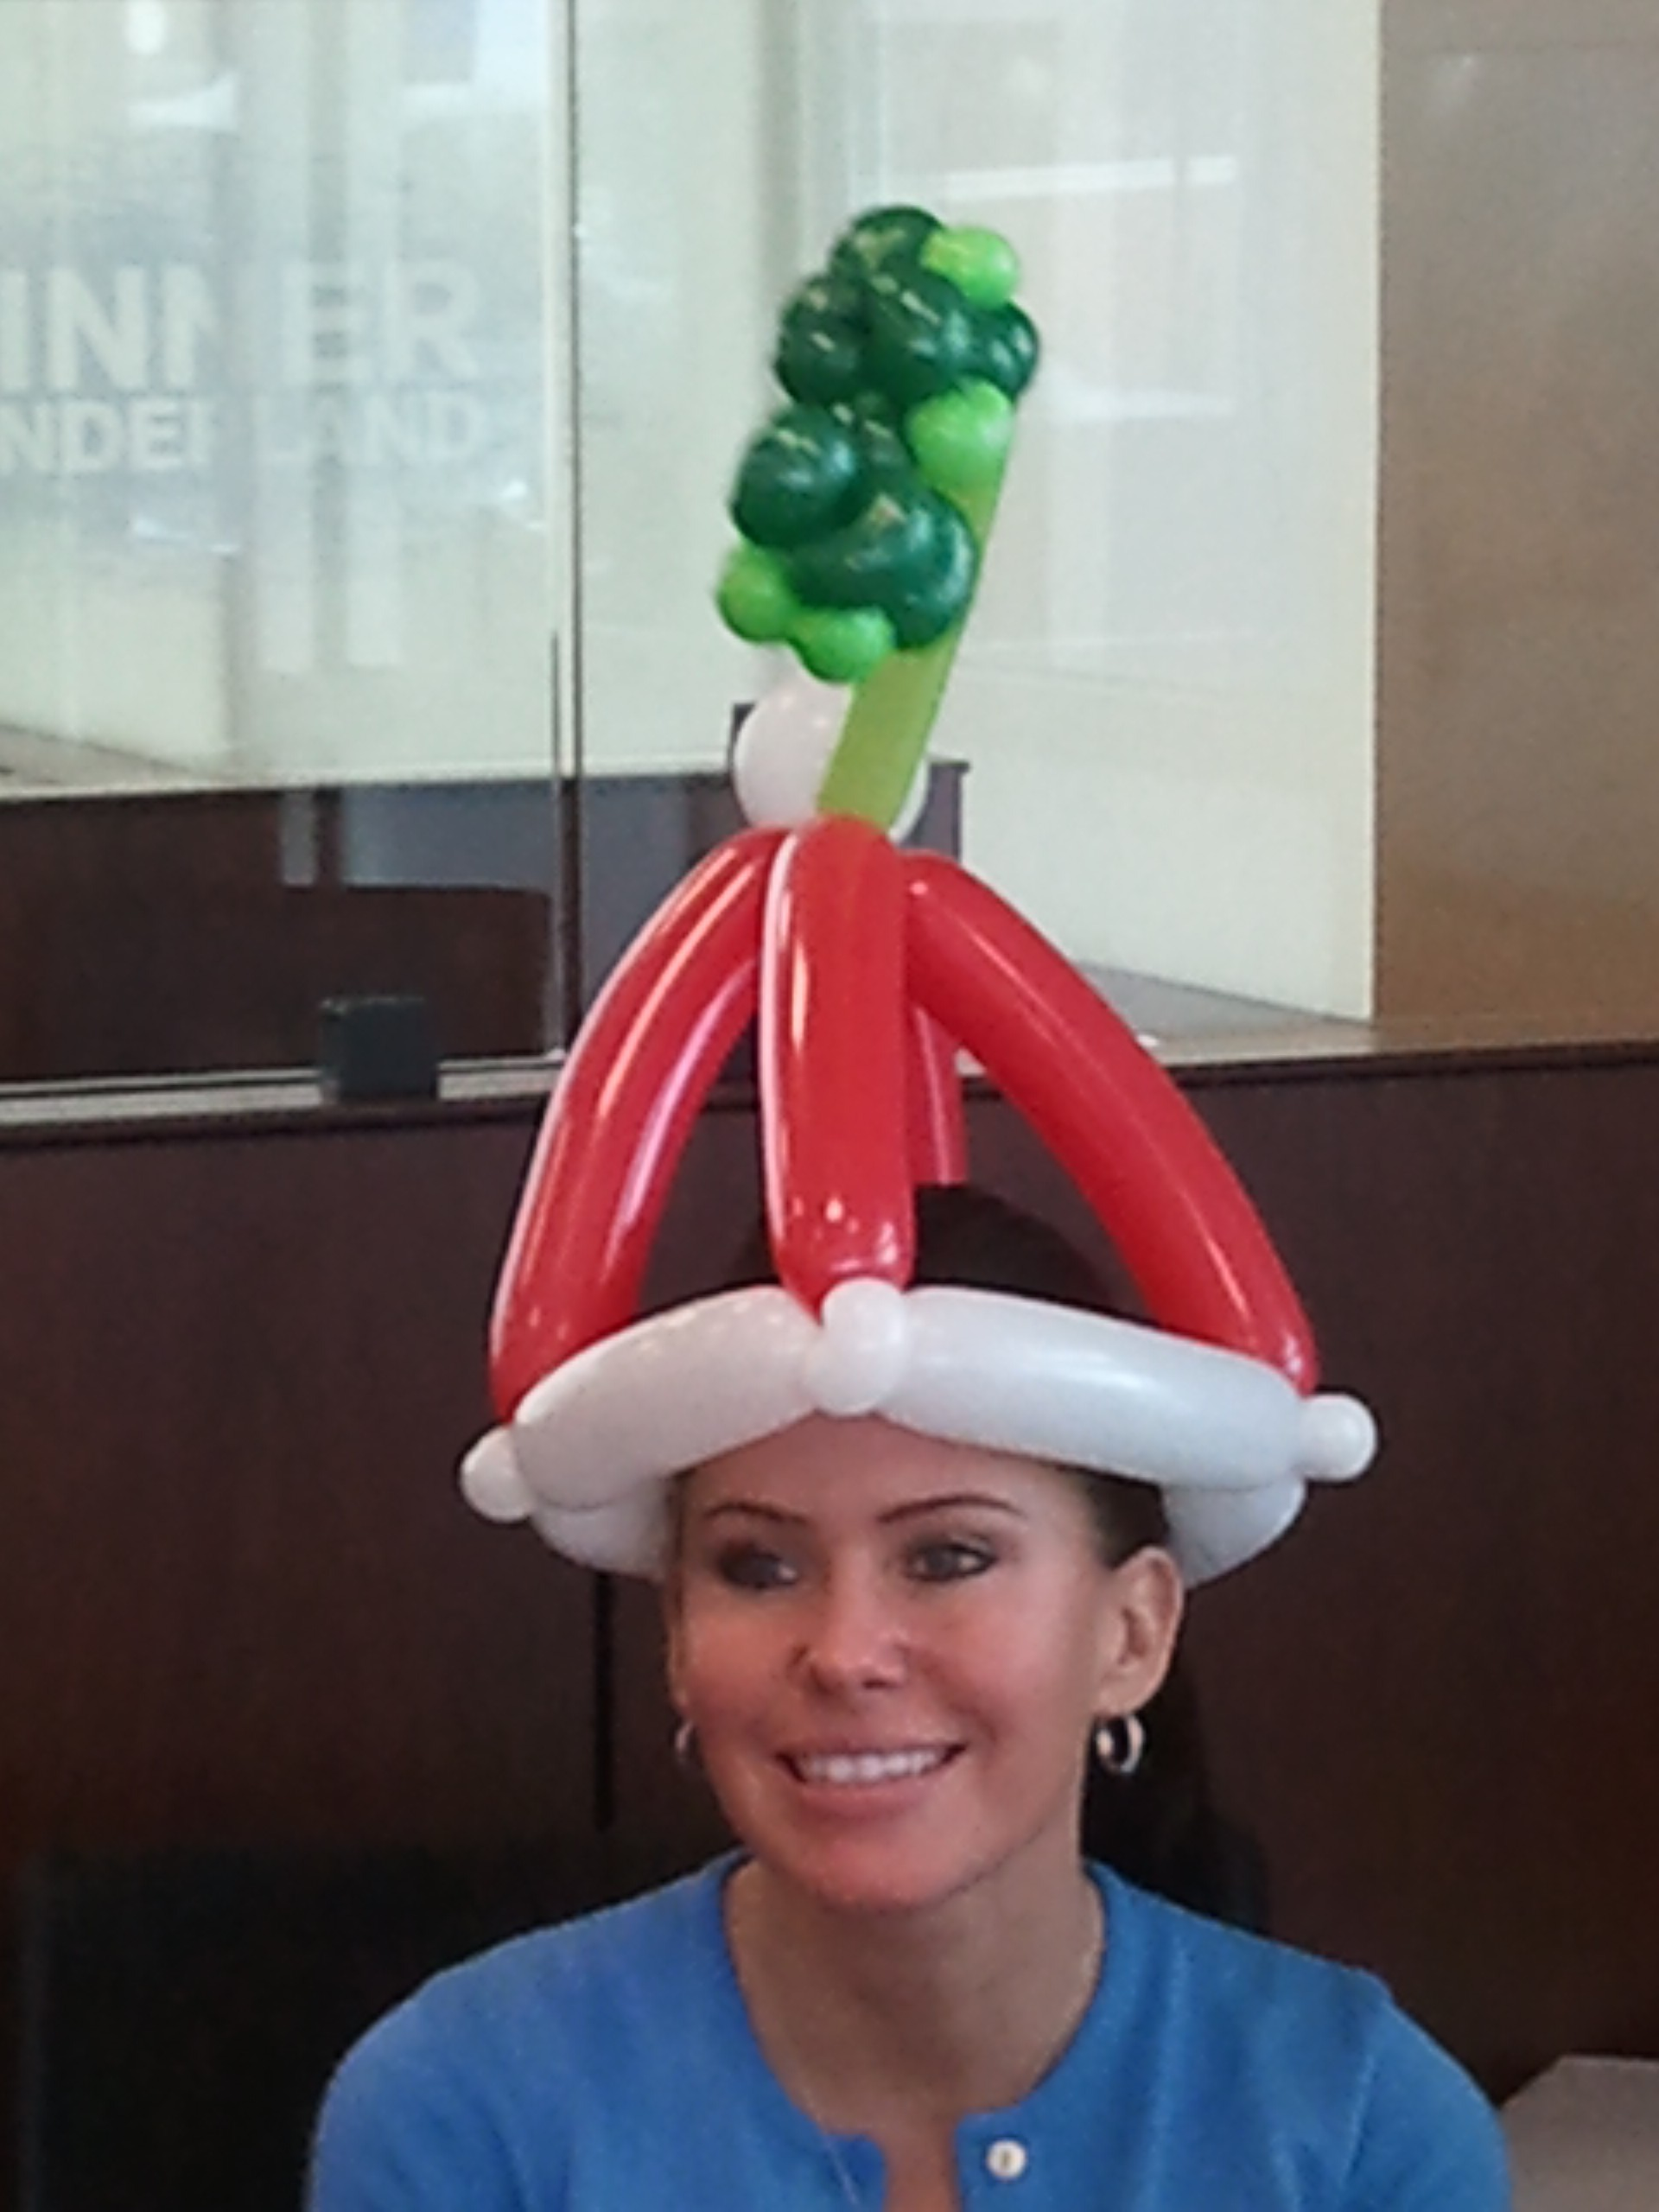 Decoraciones Con Globos Para Navidad together with Surprised Warning 704946 in addition Mod Pizza Chain Raises 40m Will Reach 100 Locations By 2016 also Marcy Walker besides 81622. on santa balloon